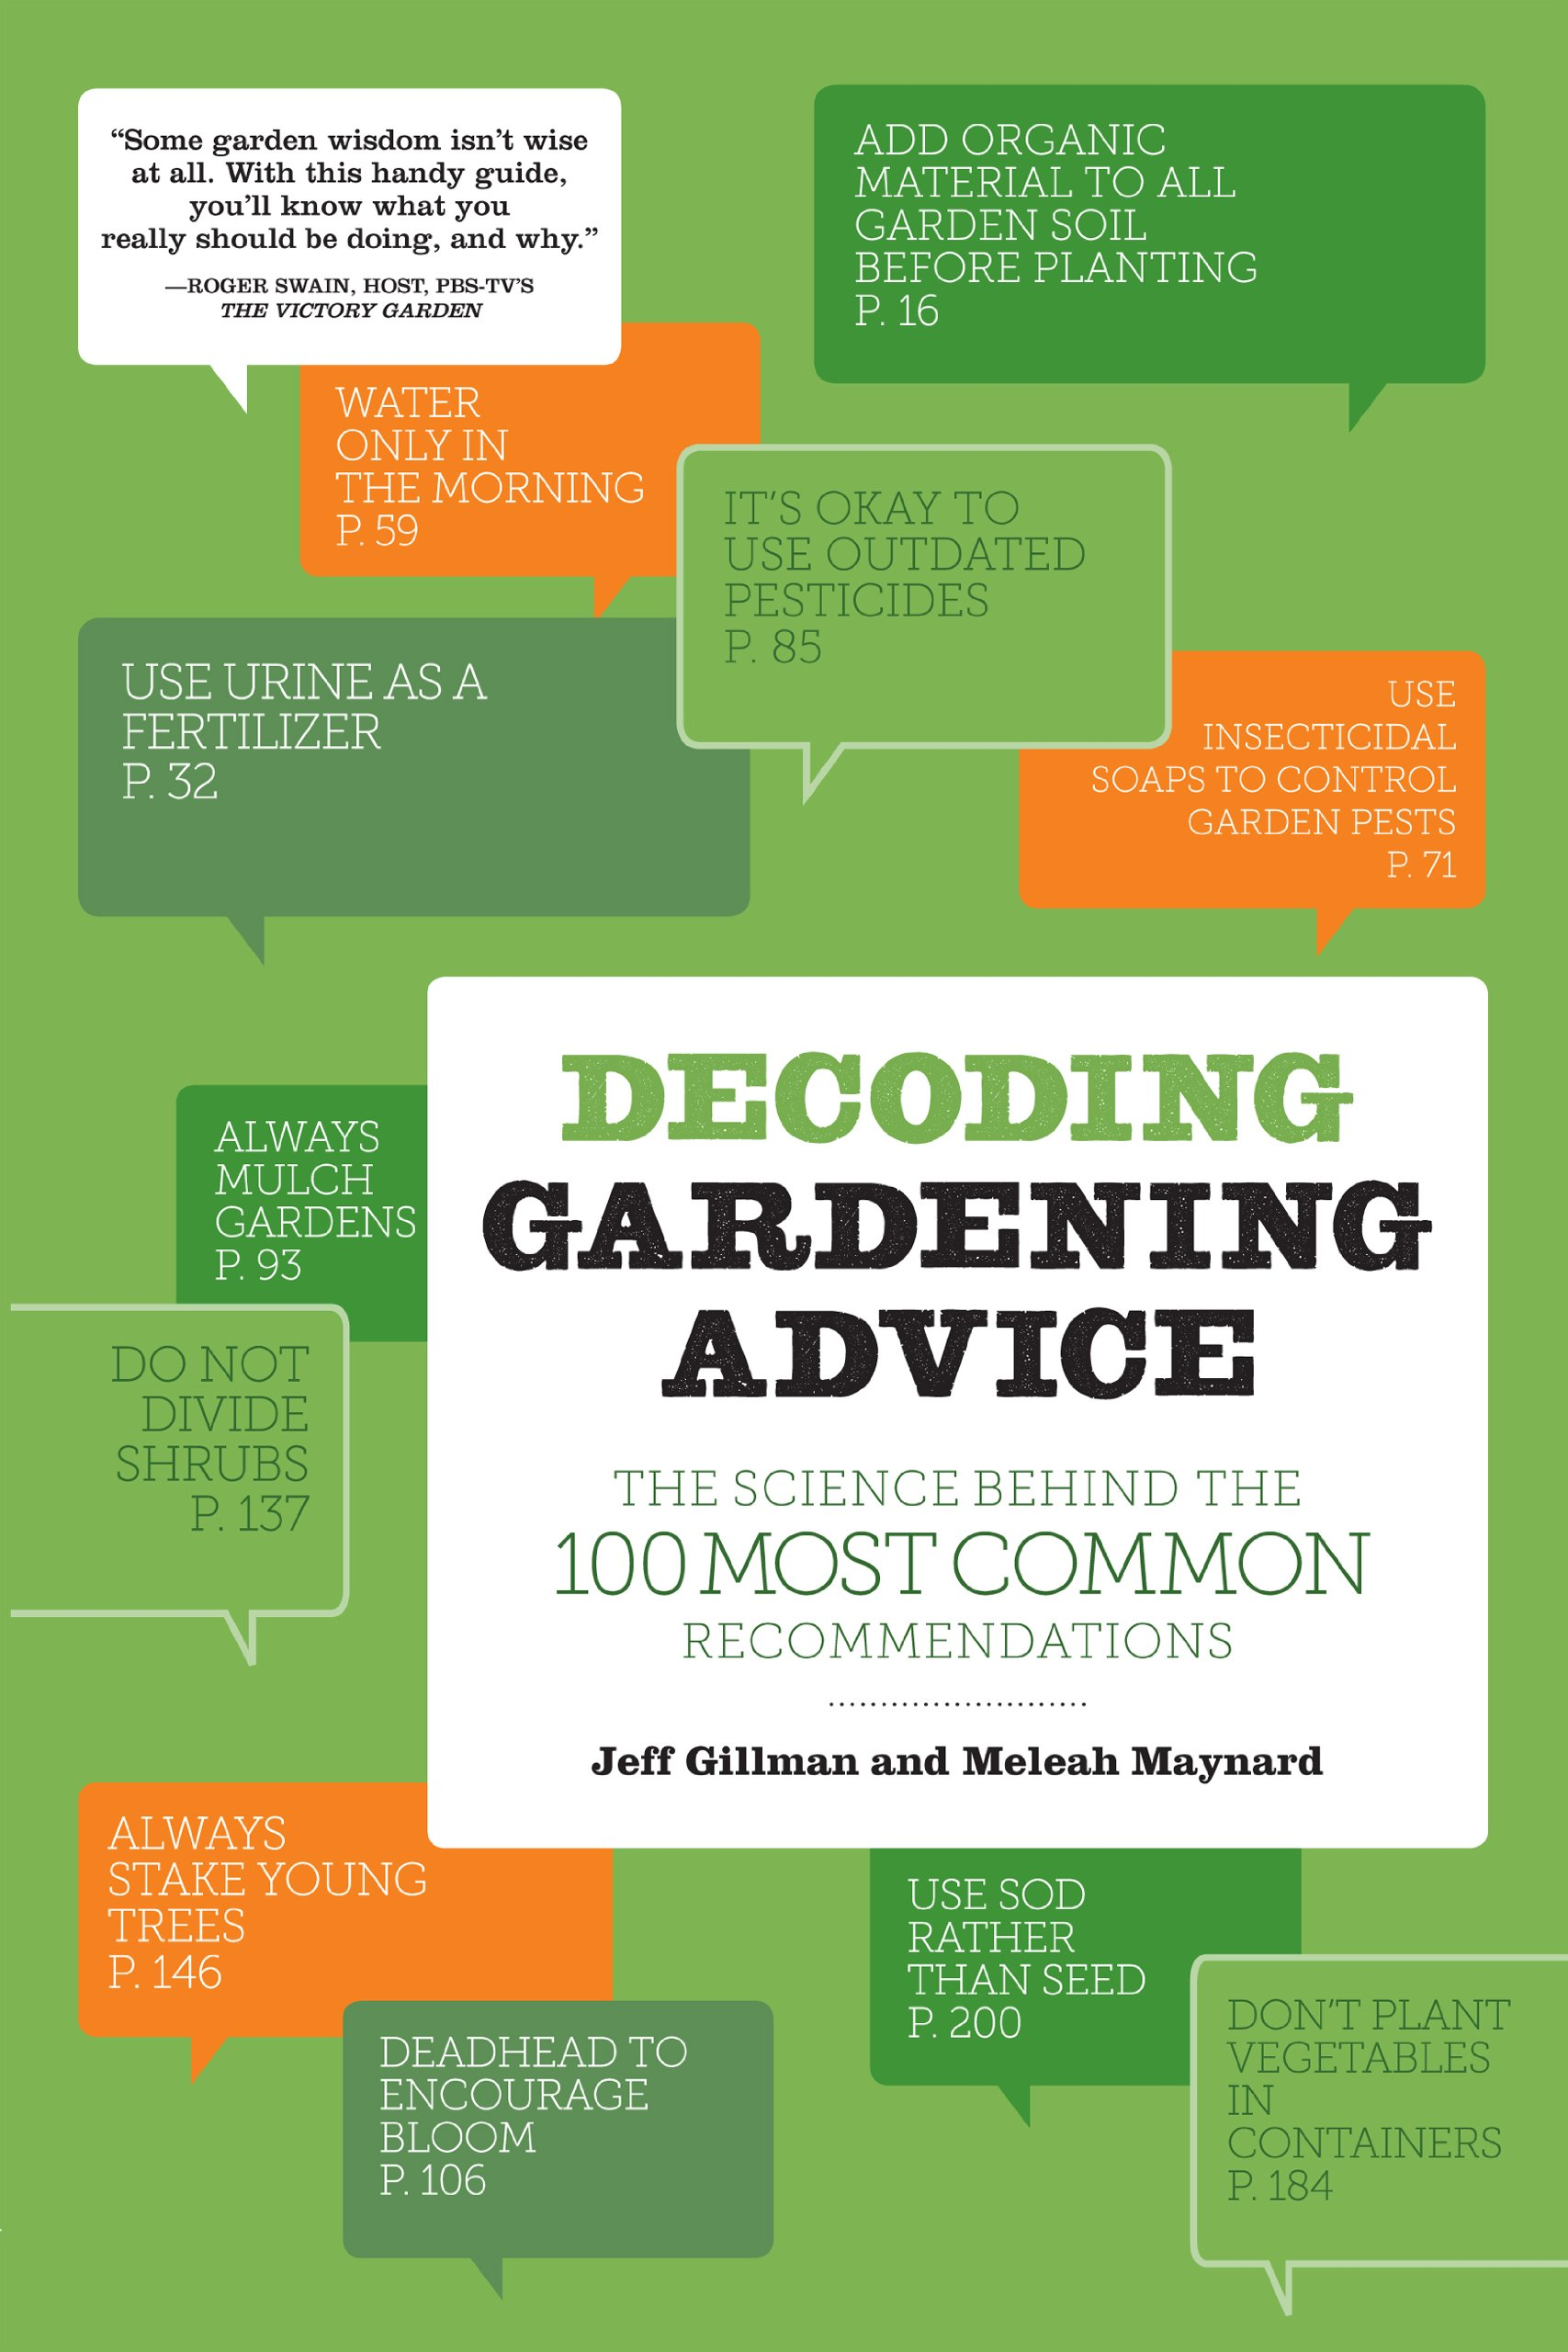 Superb Decoding Gardening Advice: The Science Behind The 100 Most Common  Recommendations: Jeff Gillman, Meleah Maynard: 9781604692204: Amazon.com:  Books